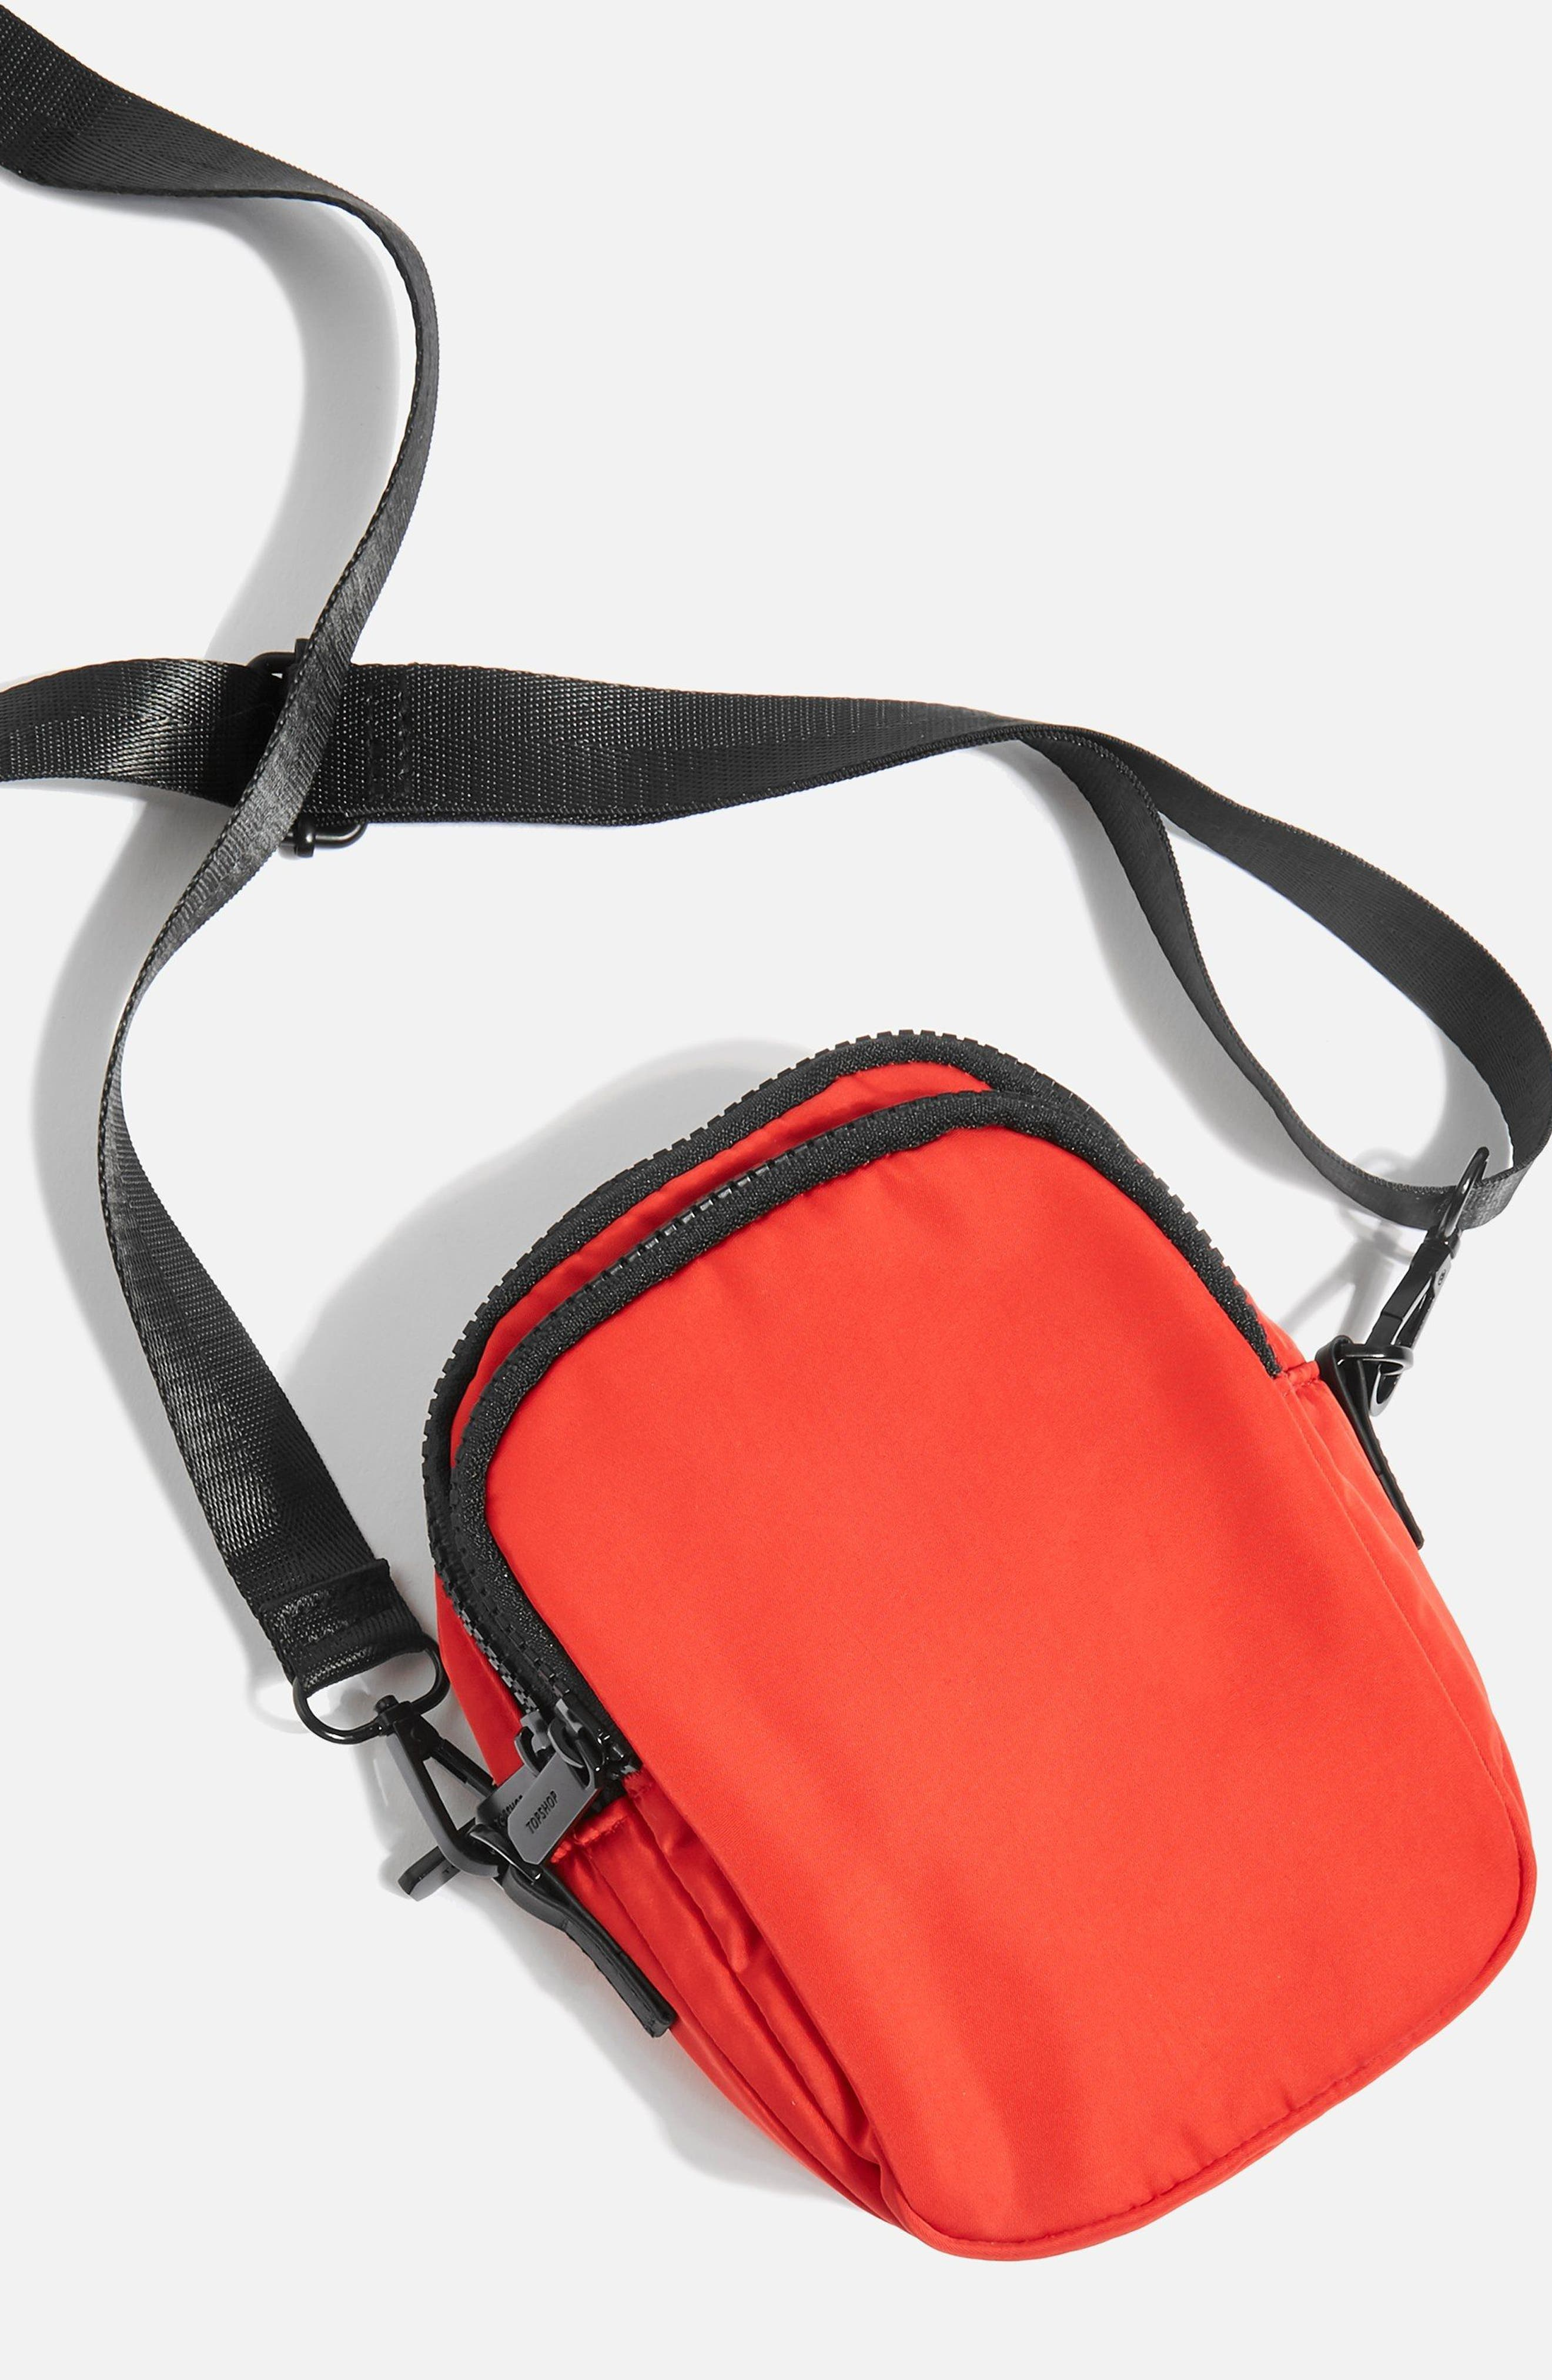 Storm Nylon Pouch,                             Alternate thumbnail 3, color,                             Red